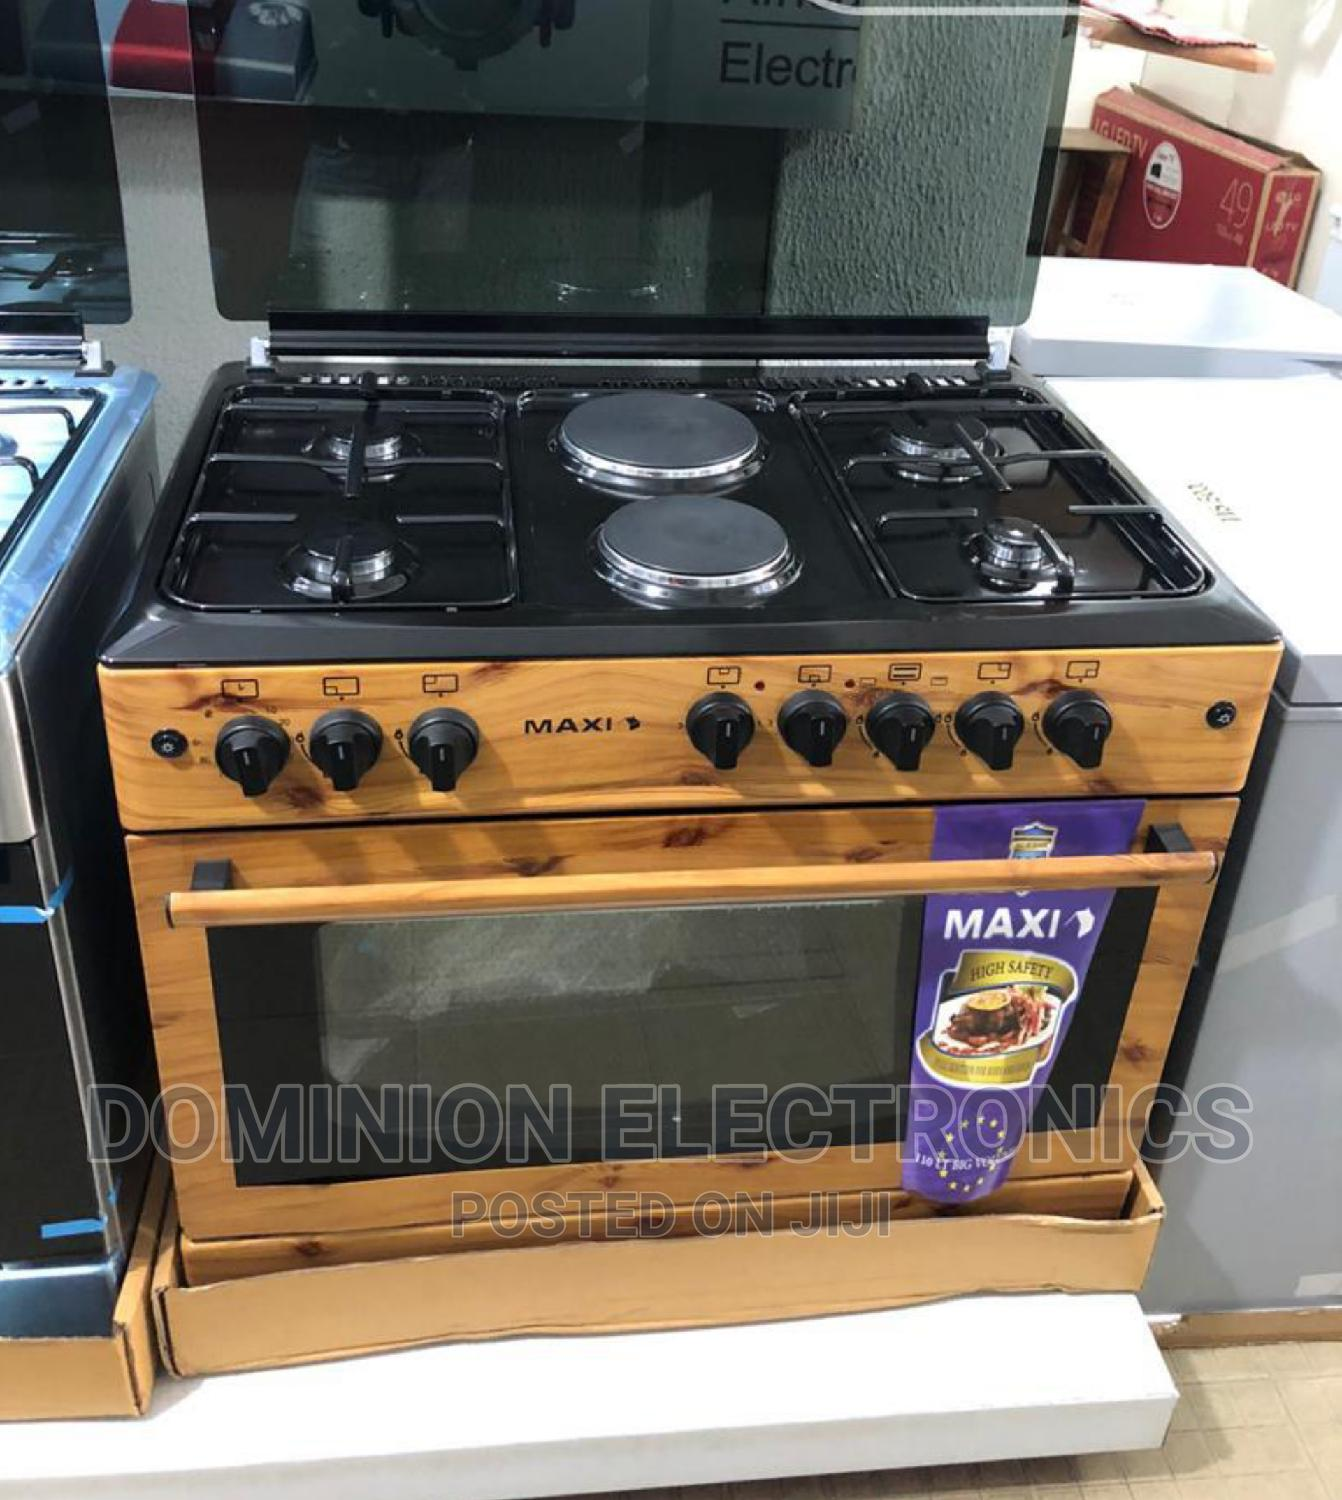 New Maxi Auto Ignition 4gas 2electric Oven Grill 60*90cm